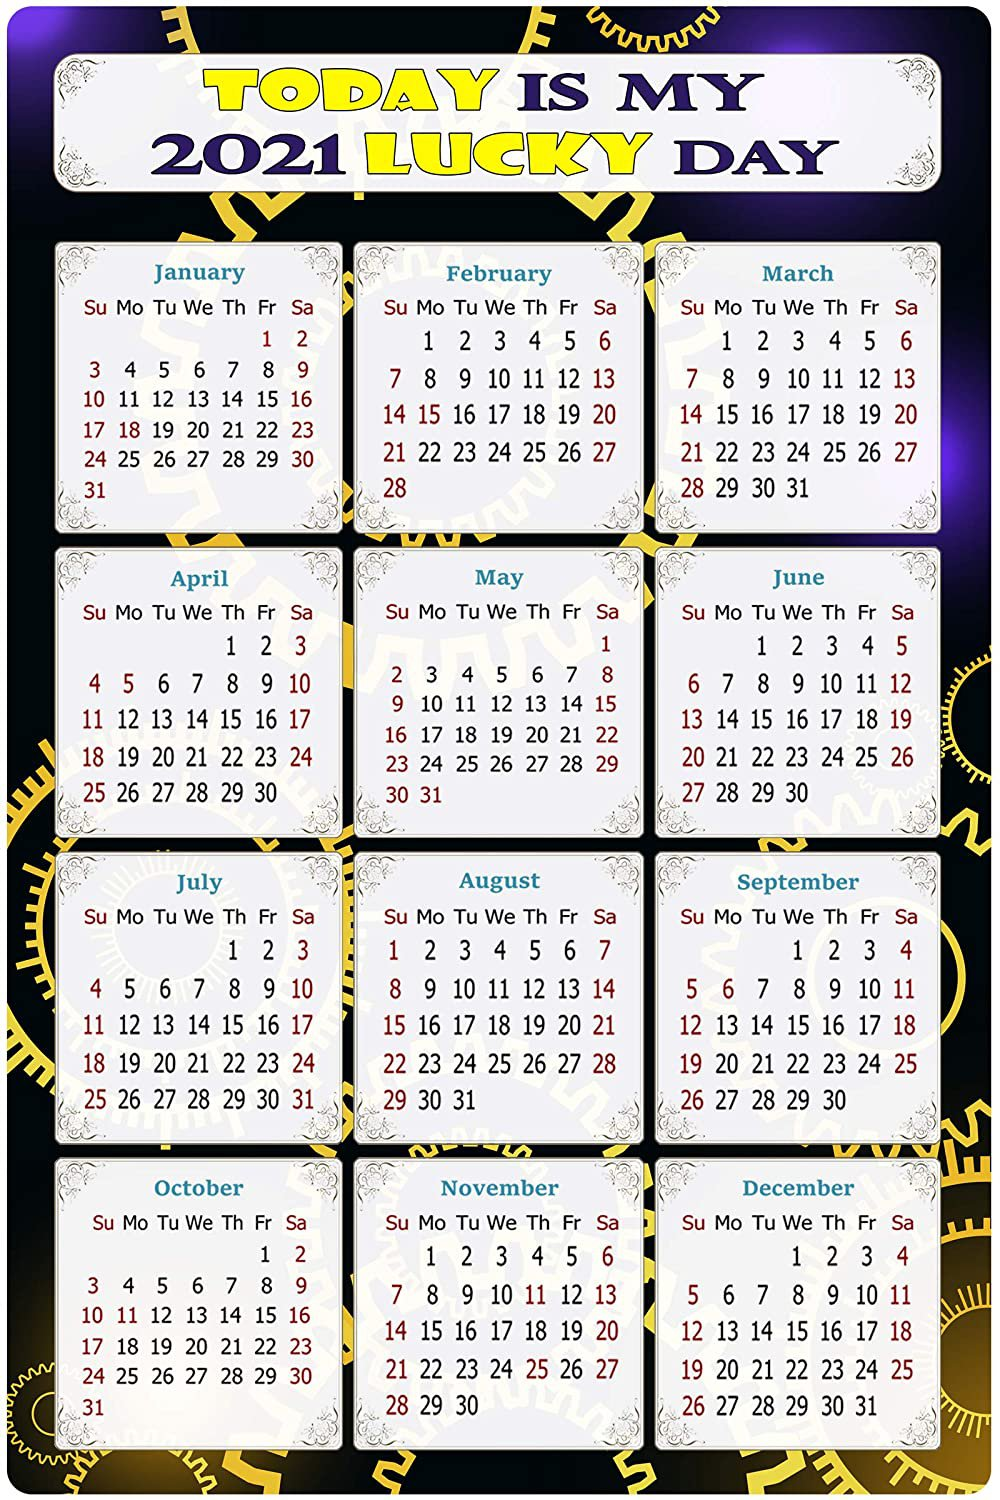 2021 Magnetic Calendar - Calendar Magnets - Today is My Lucky Day - Themed 05 (5.25 x 8)